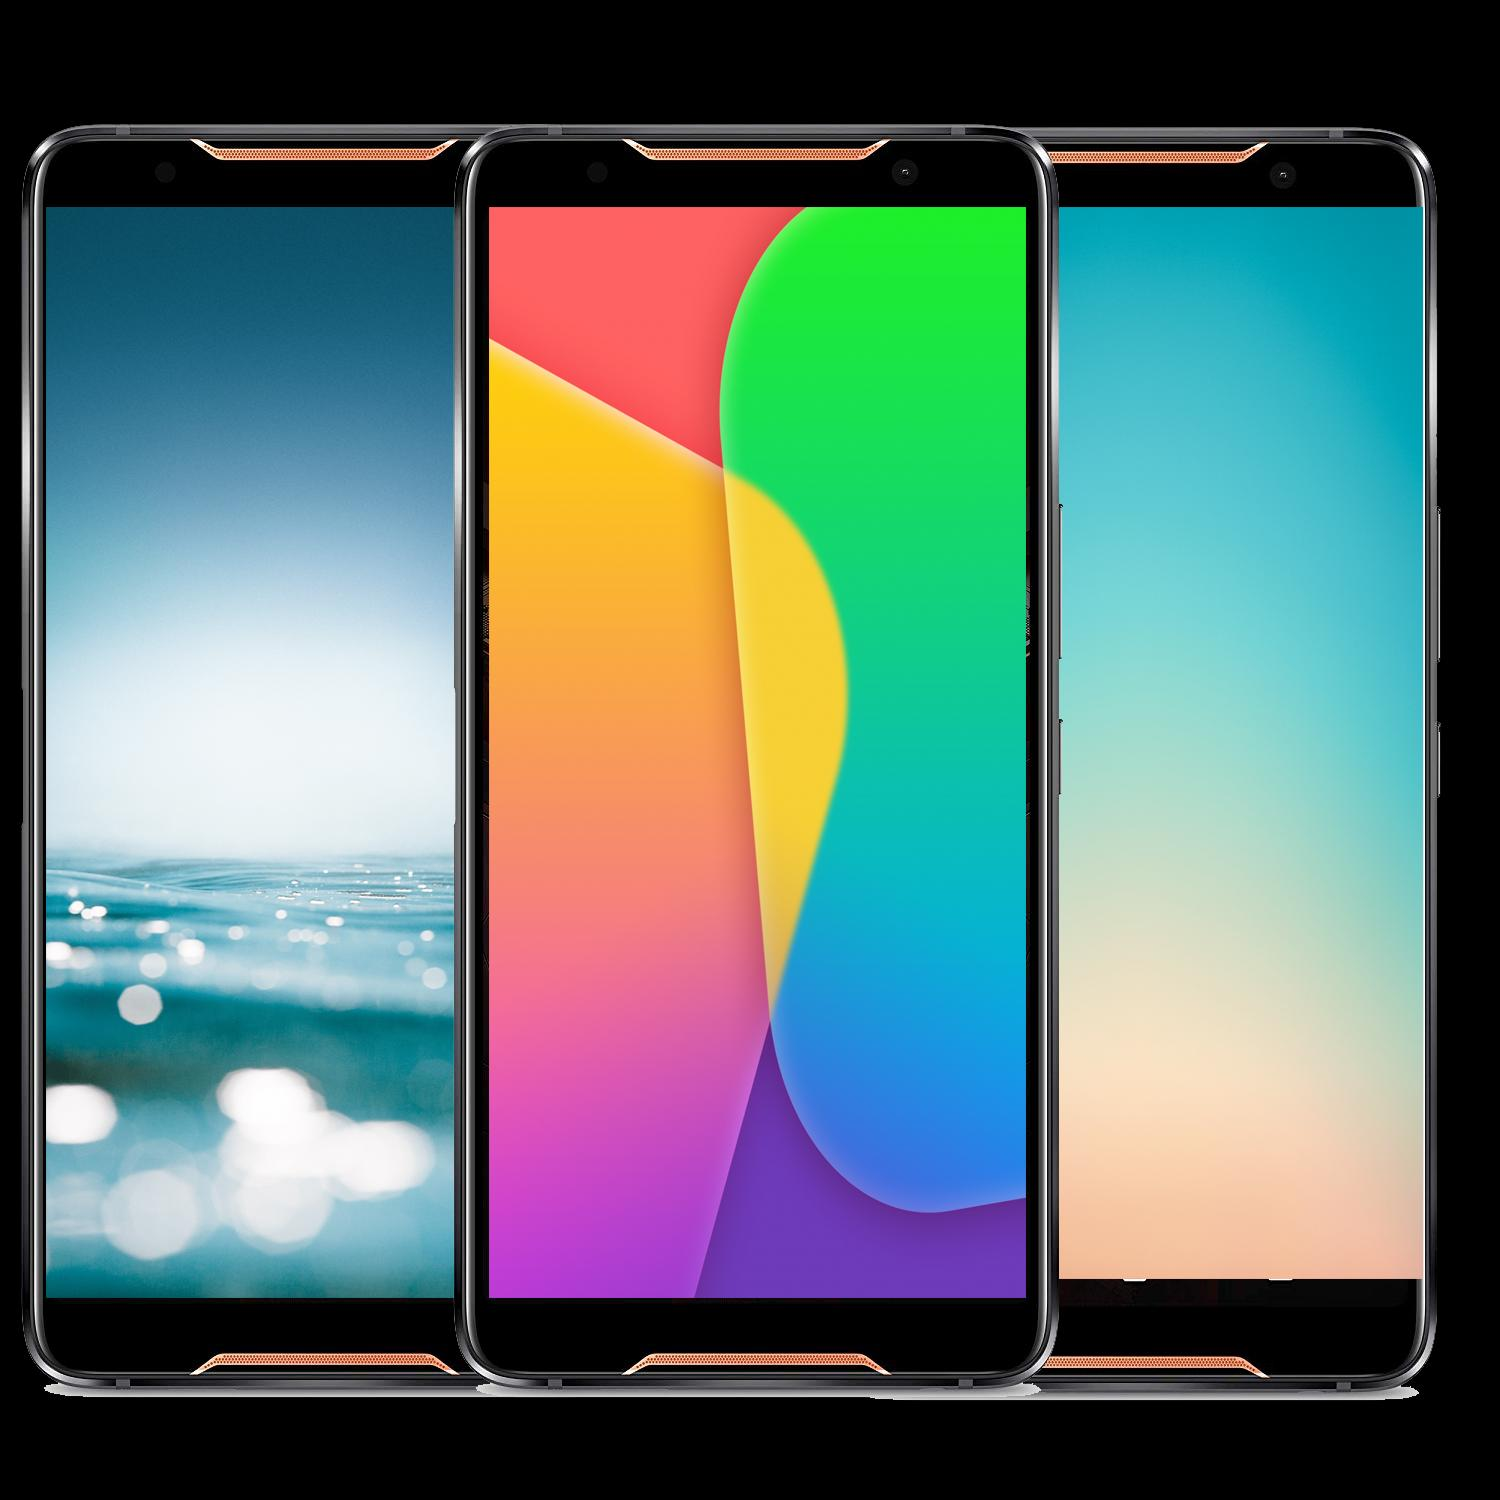 Wallpaper Iphone X 2019 Wallpaper Iphone Xs 2019 For